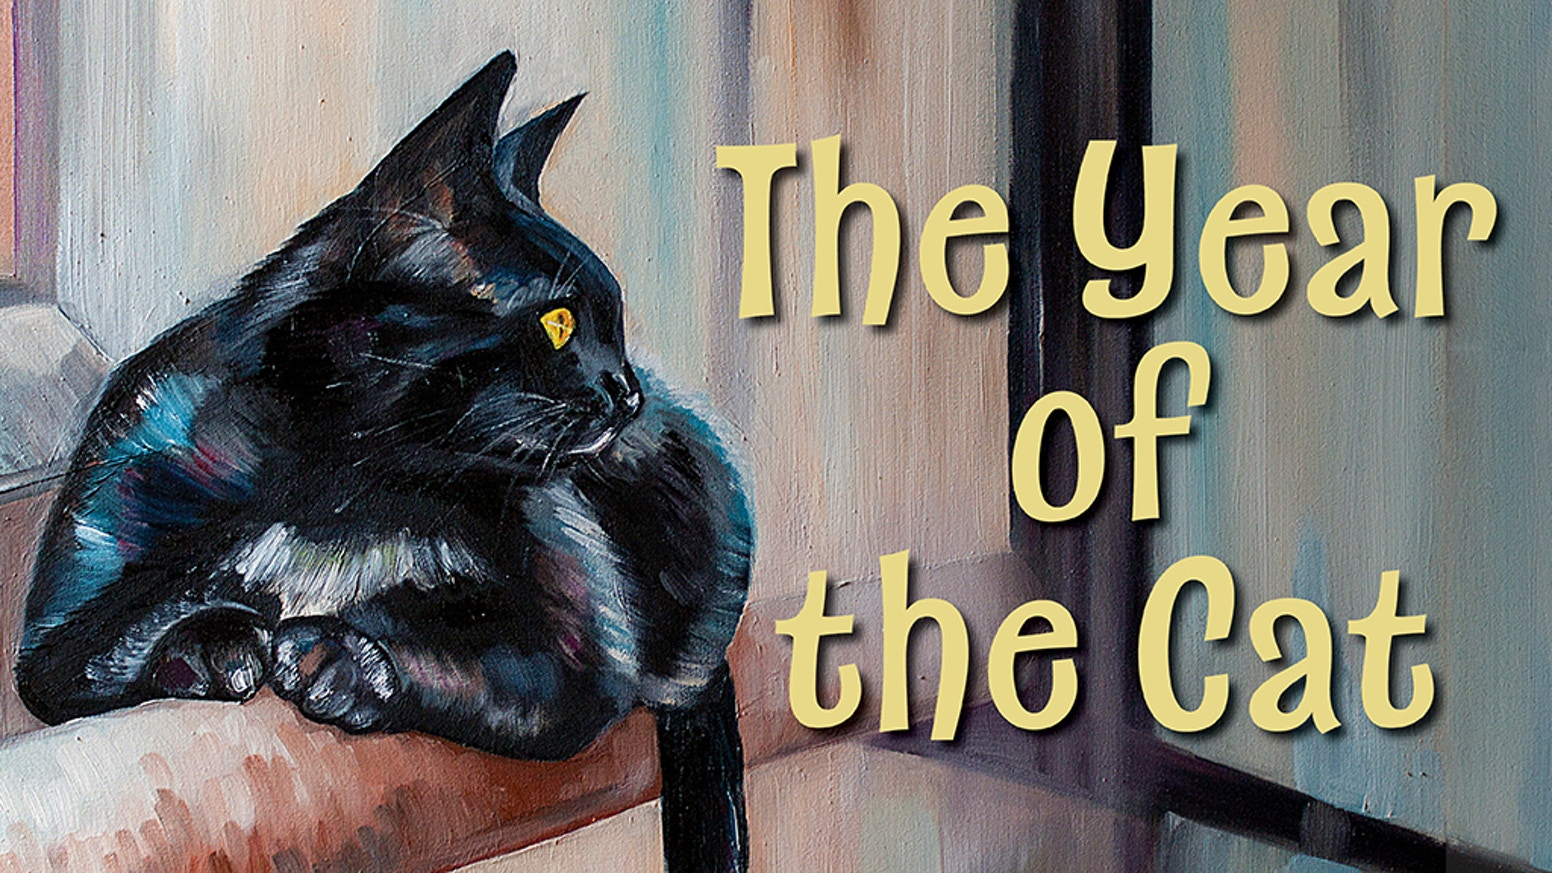 The Year of the Cat: Make 100 Cat Stories